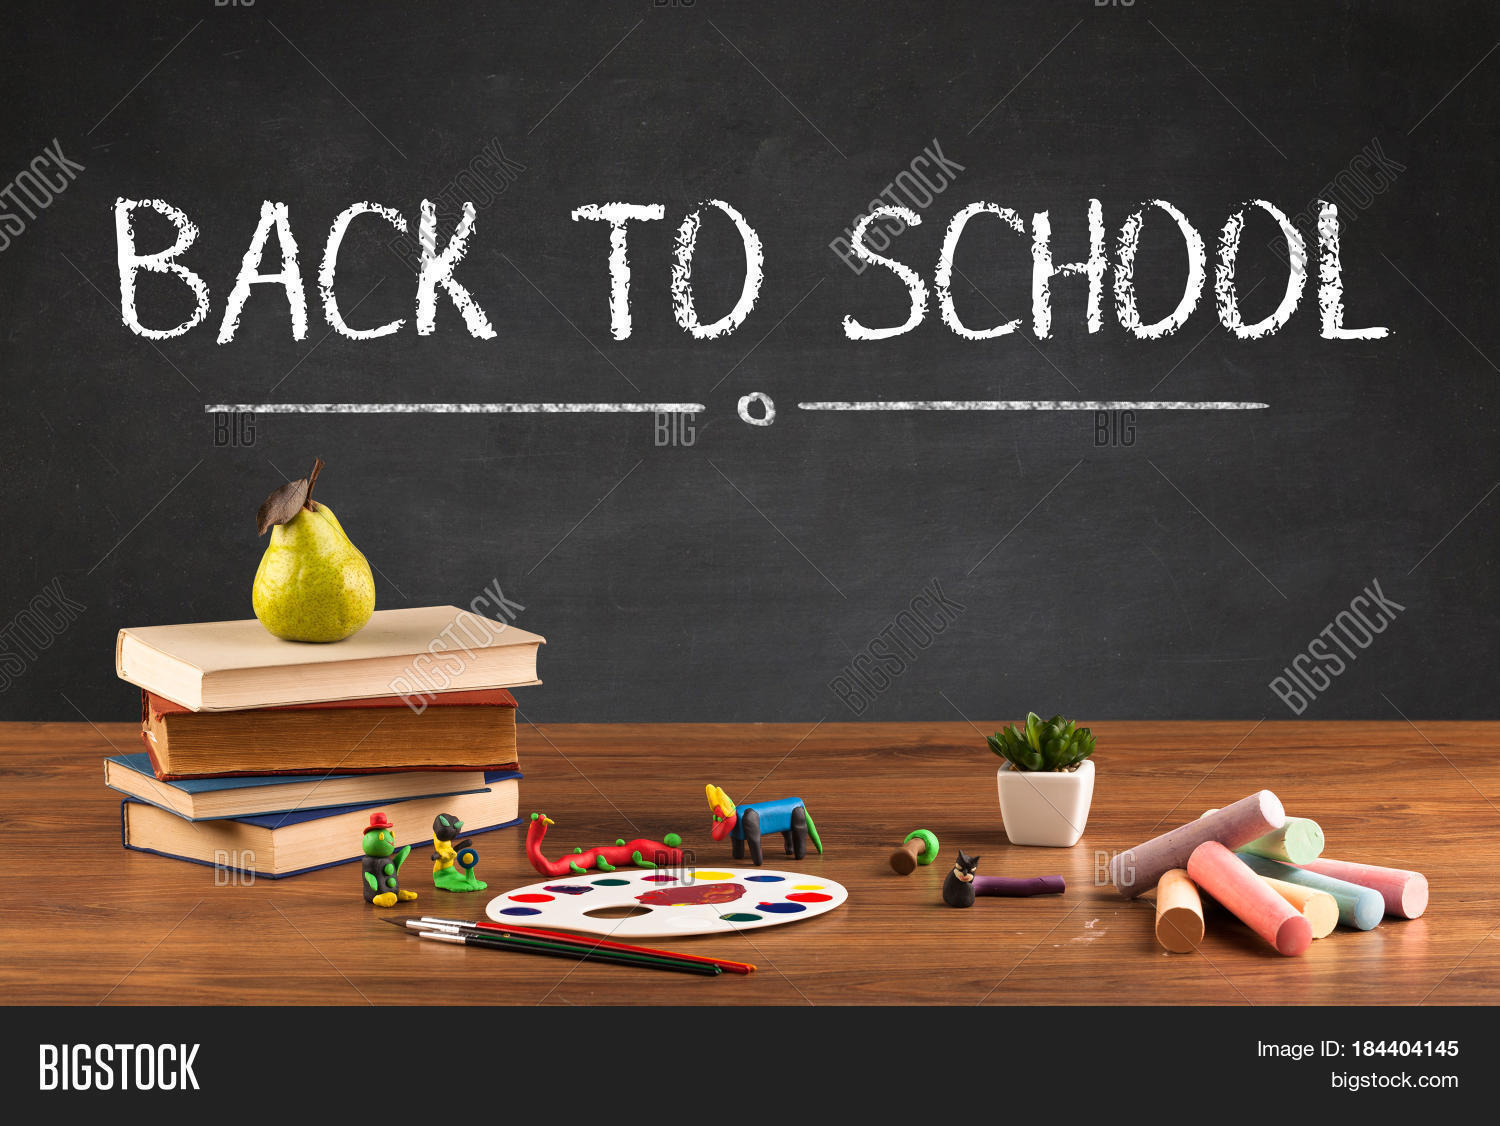 back to school writing Here are some fun, educational activities you can choose from to get your students back in action for the new school year click here.